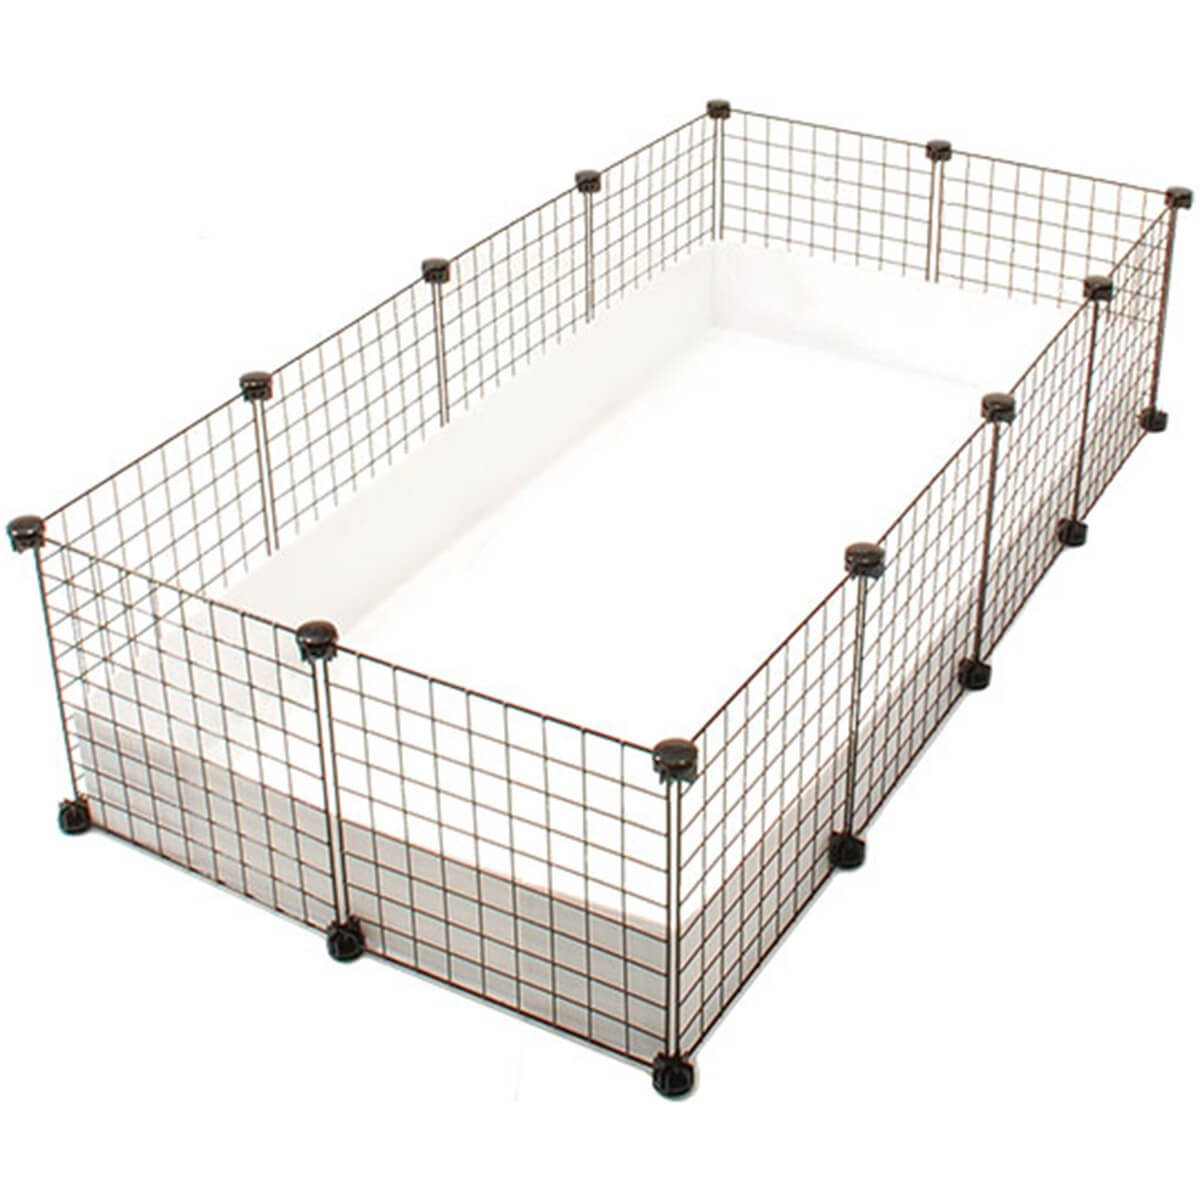 Large 2x4 grids cage clearance cages c c cages for for Making a c c cage